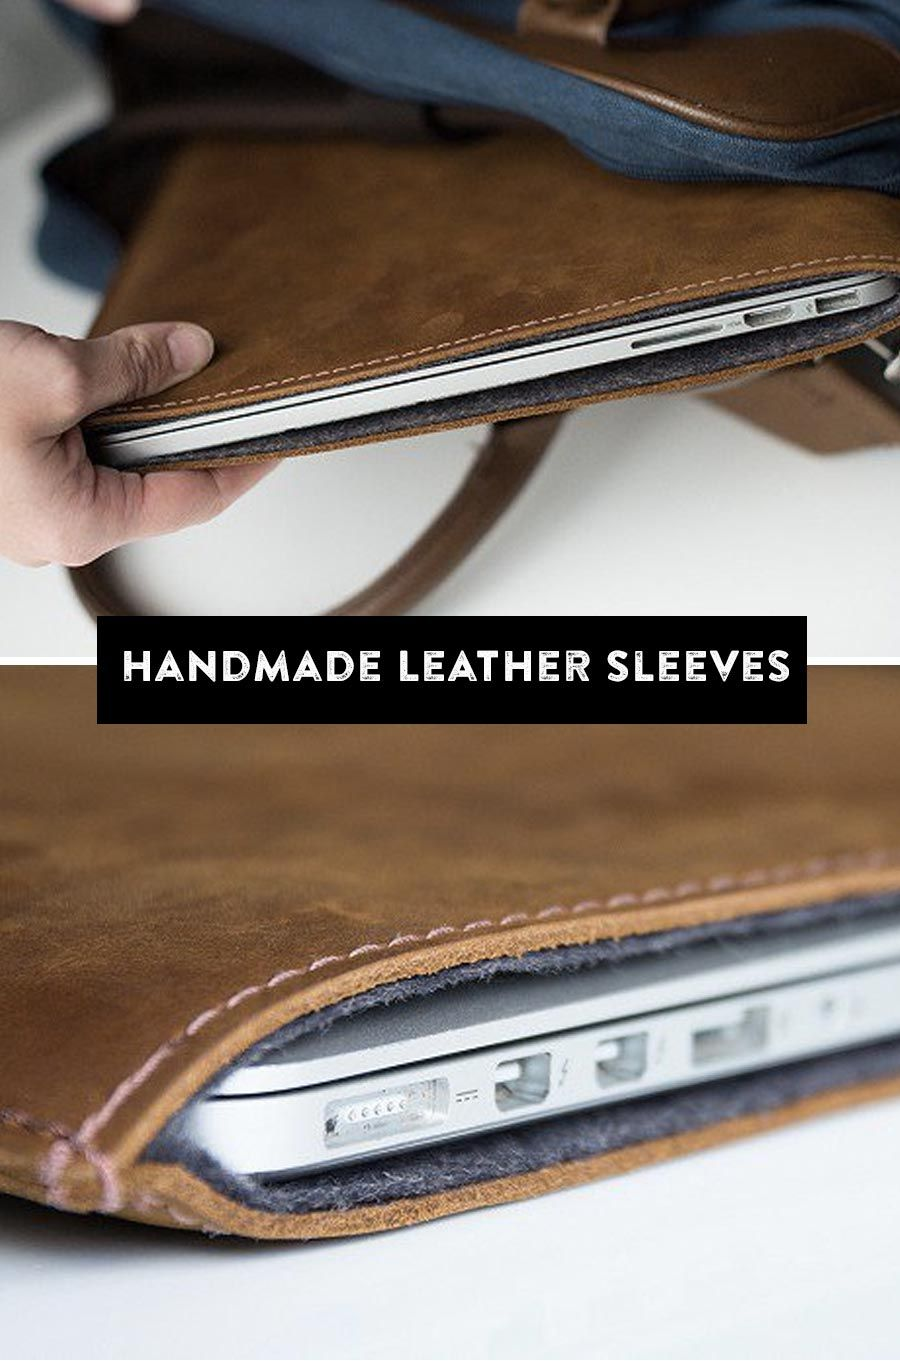 Handcrafted In Texas These Handsome Leather Sleeves Fit Apple Laptops And Ipads Perfectly Estuche De Cuero Bolsa Para Laptop Funda De Cuero